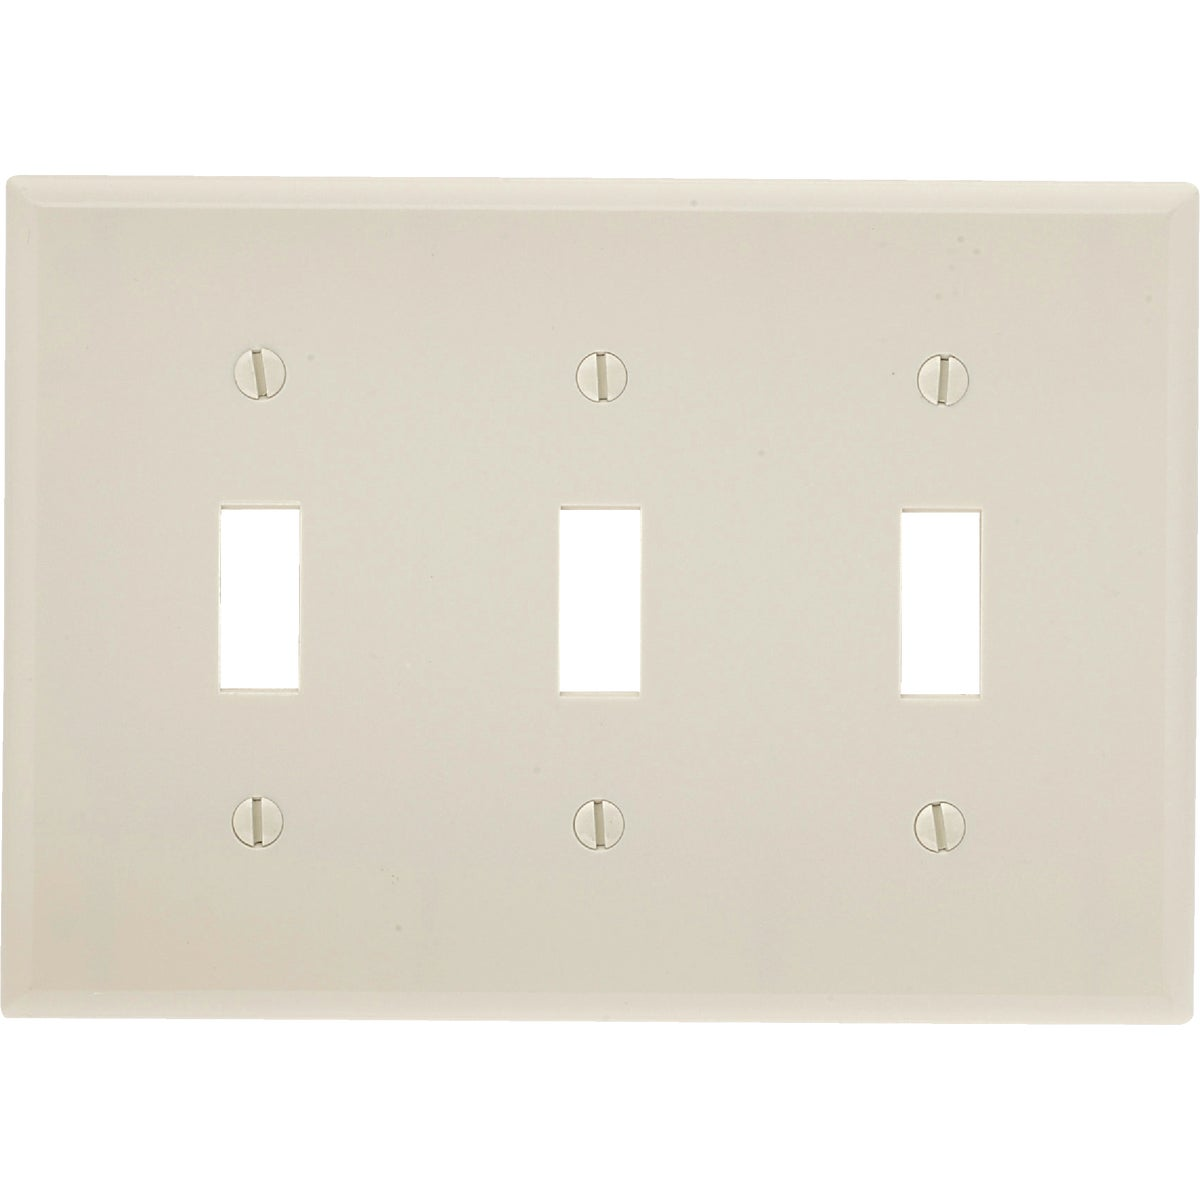 LT ALM 3-TGL WALLPLATE - 000-78011 by Leviton Mfg Co